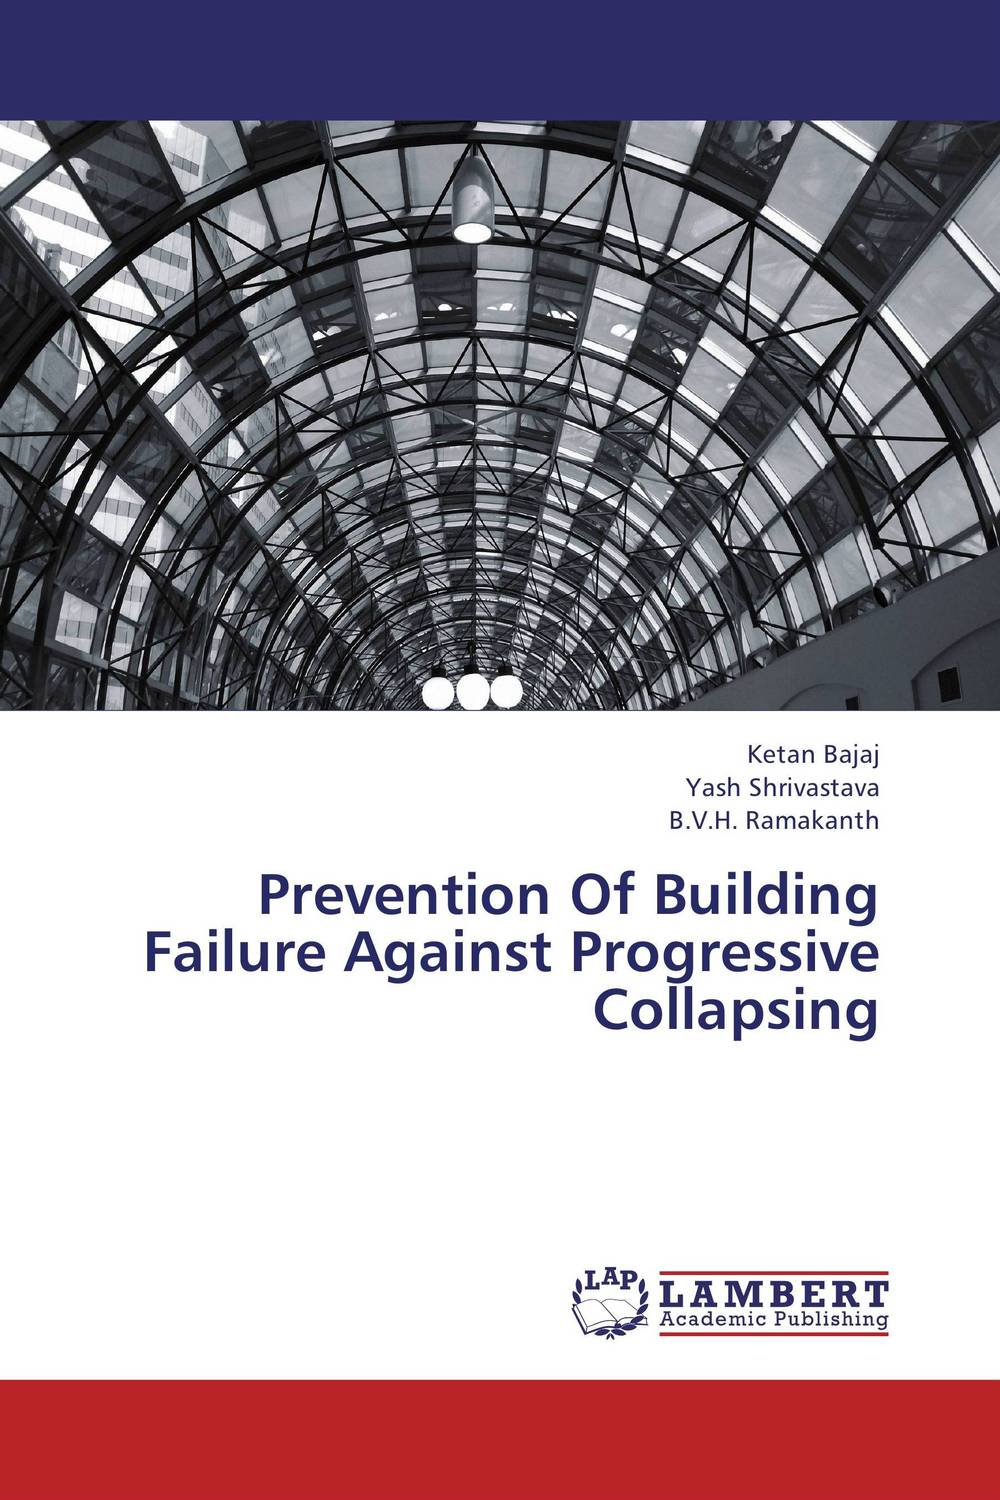 Prevention Of Building Failure Against Progressive Collapsing dynamic analysis and failure modes of simple structures